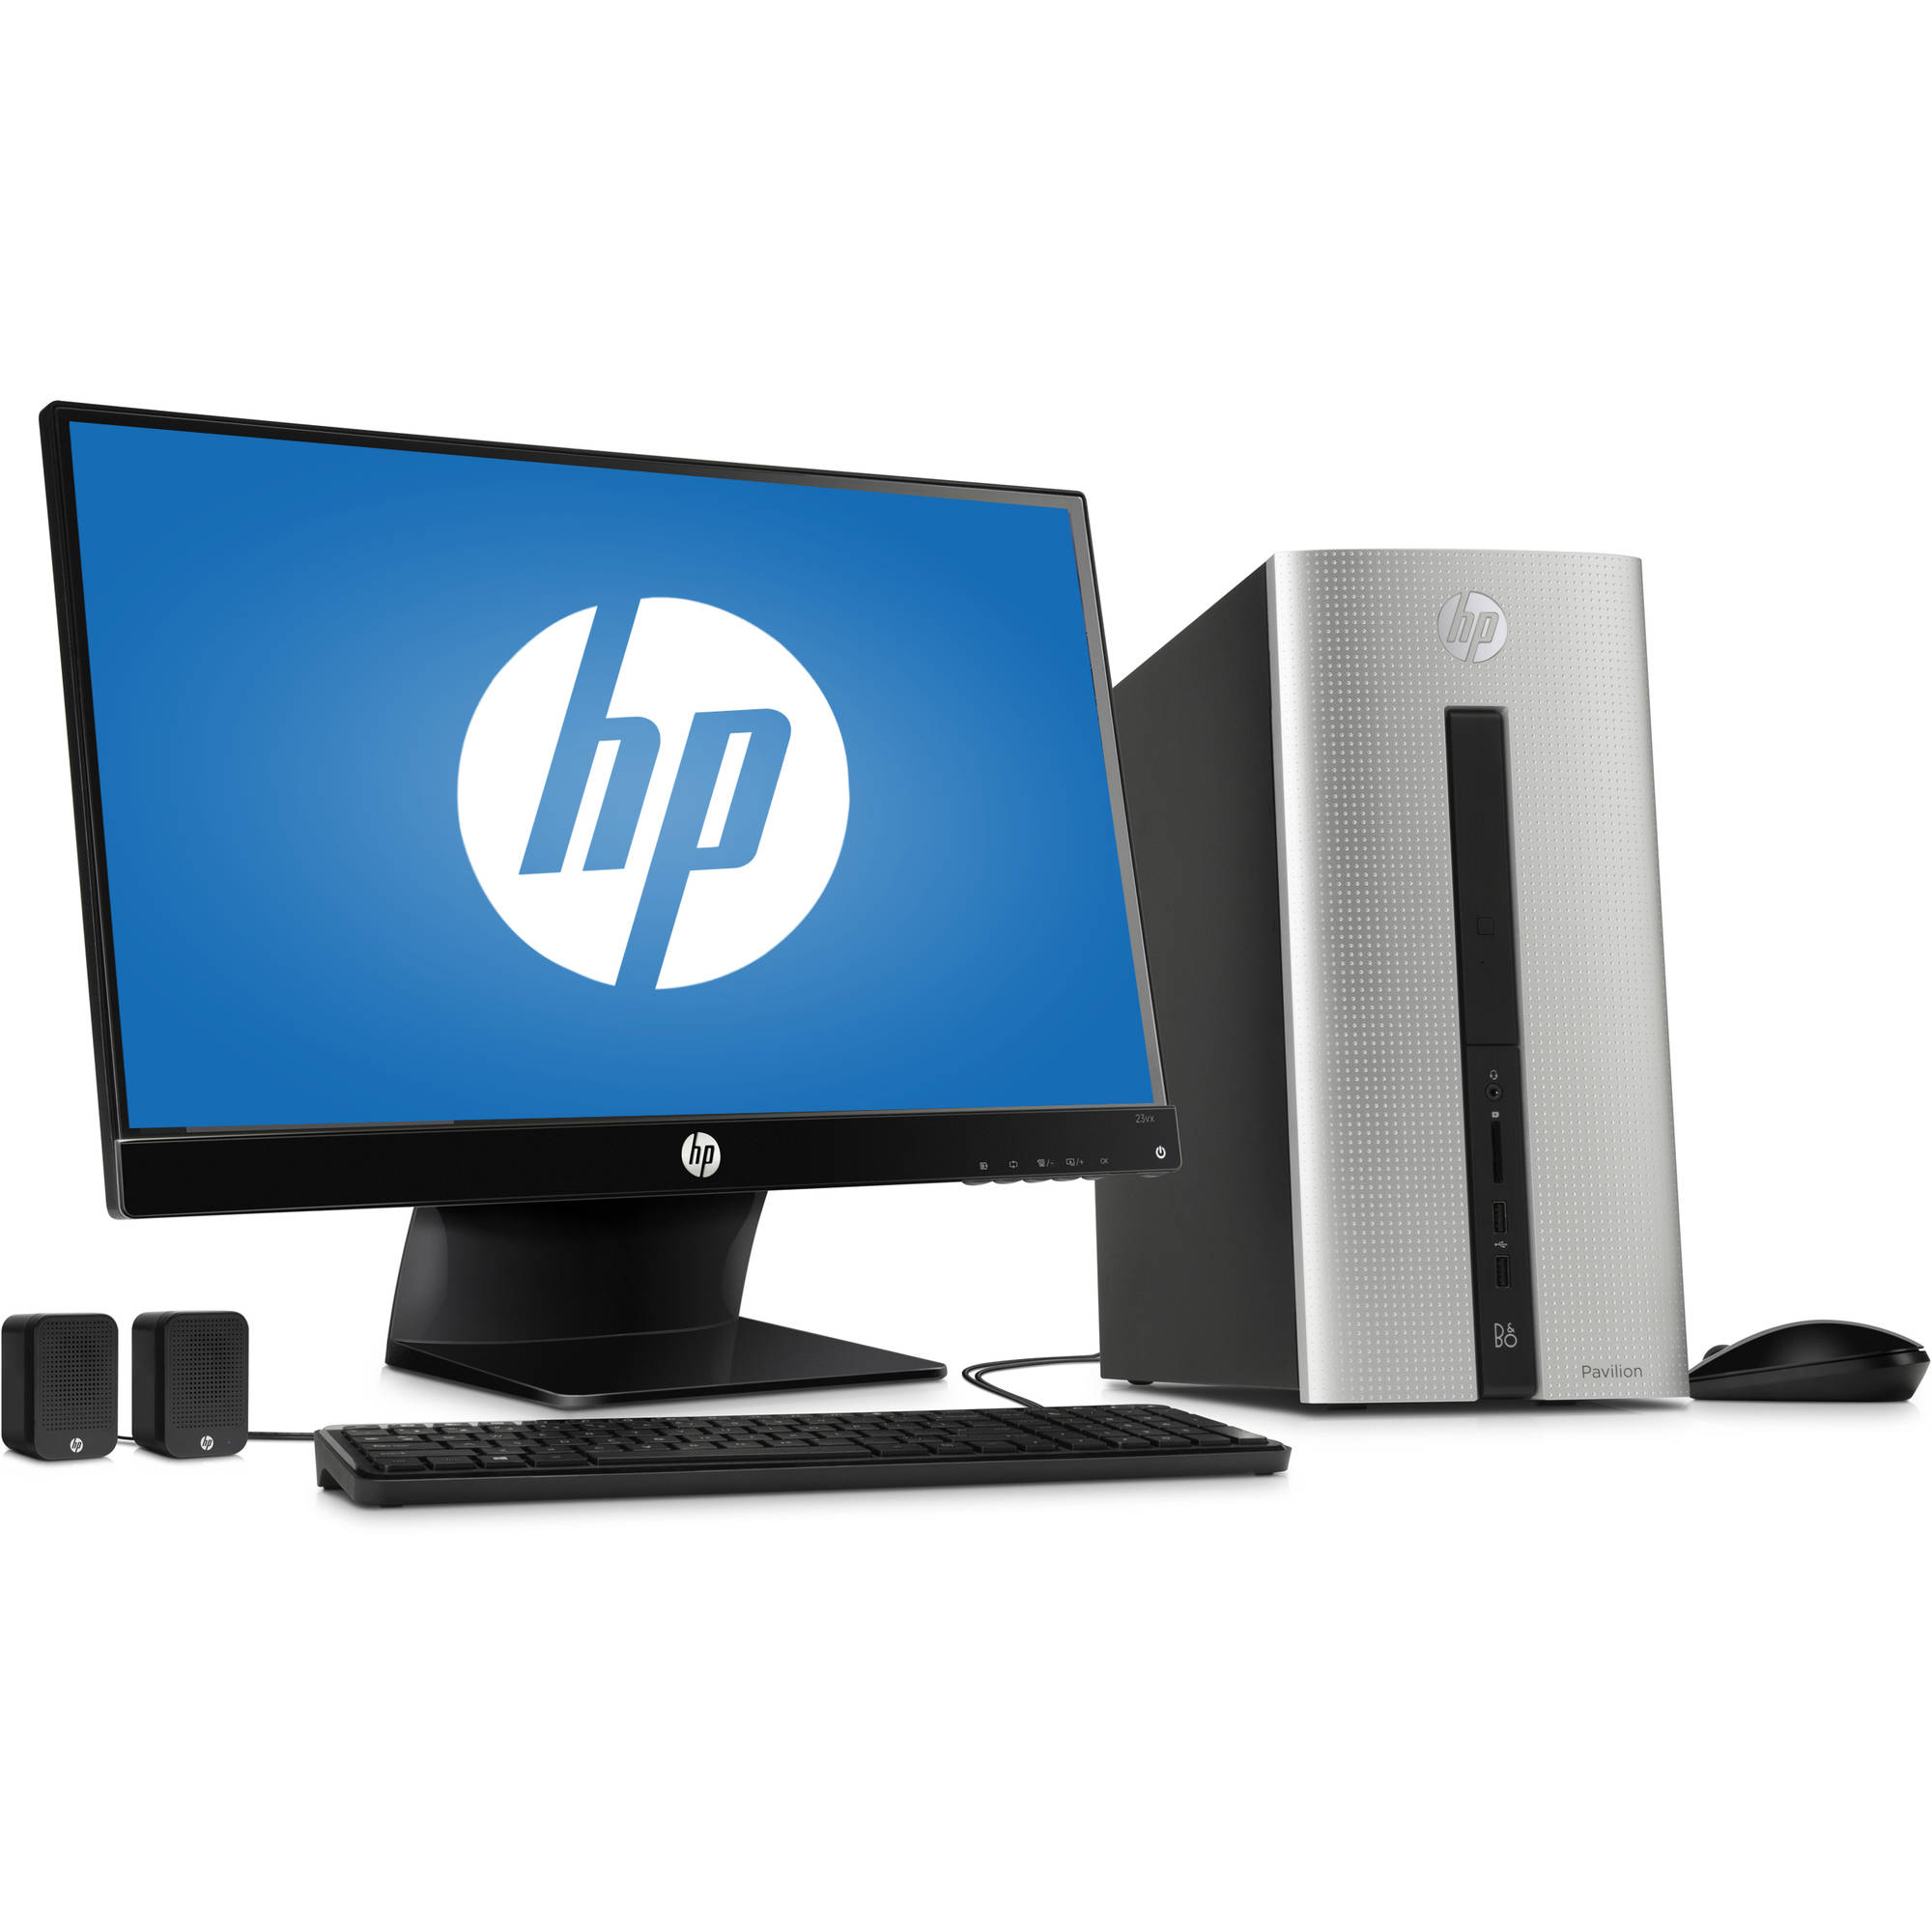 "HP Pavilion 550-153wb Desktop PC with Intel Core i3-4170 Dual-Core Processor, 6GB Memory, 23"" Monitor, 1TB Hard Drive and Windows 10 Home"